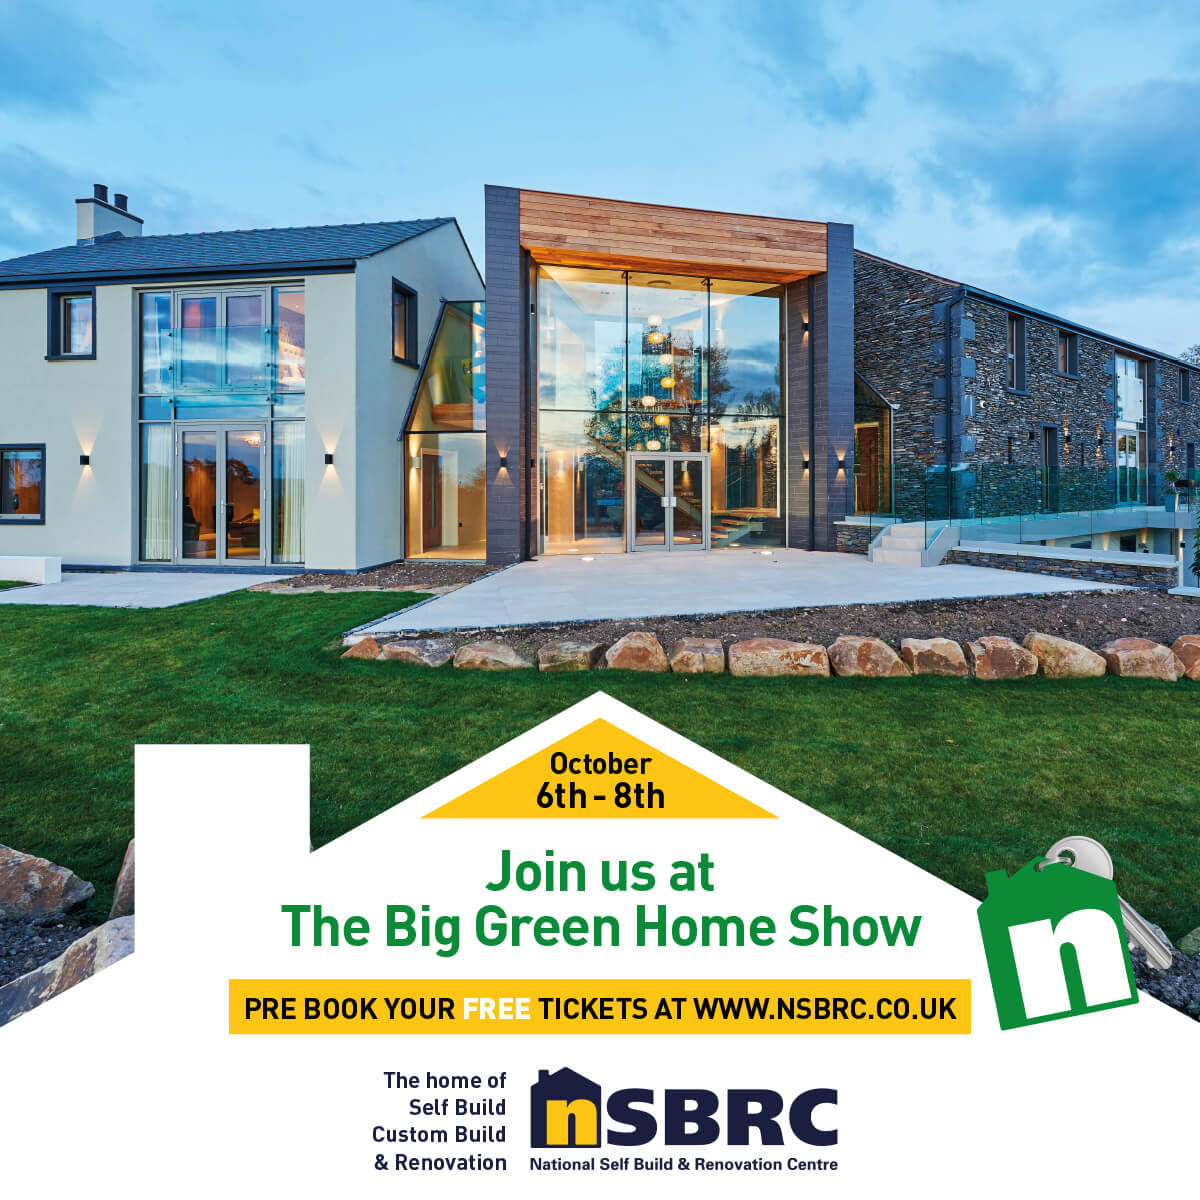 The Big Green Home Show 2017. Visit Premier Loft Ladders on stand 168